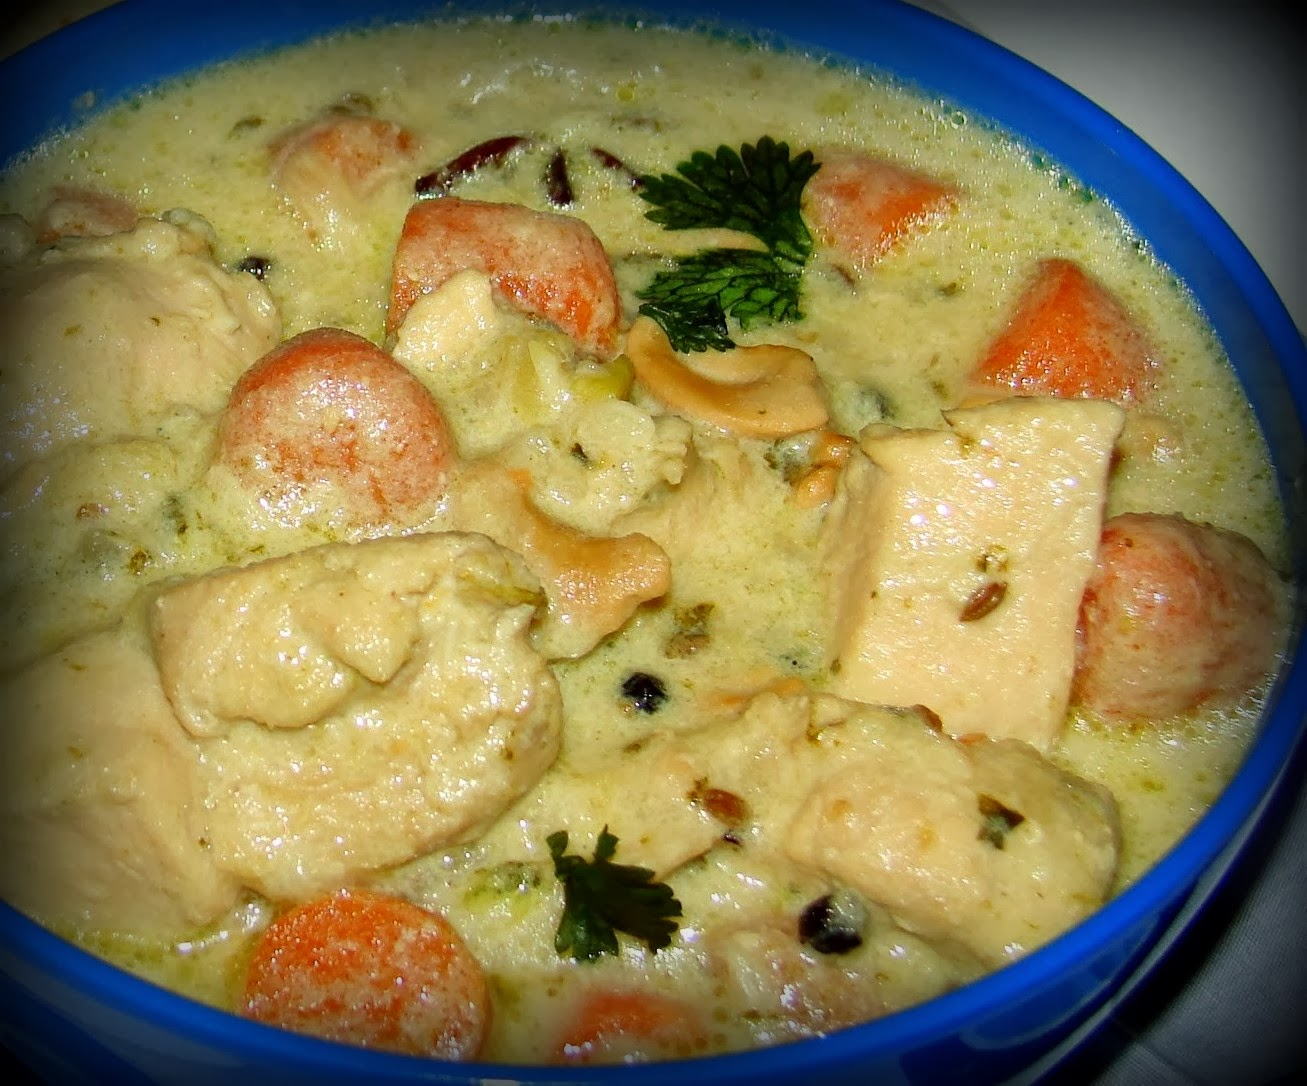 Dinner recipes idea chicken stew indian style dinner recipes idea forumfinder Choice Image